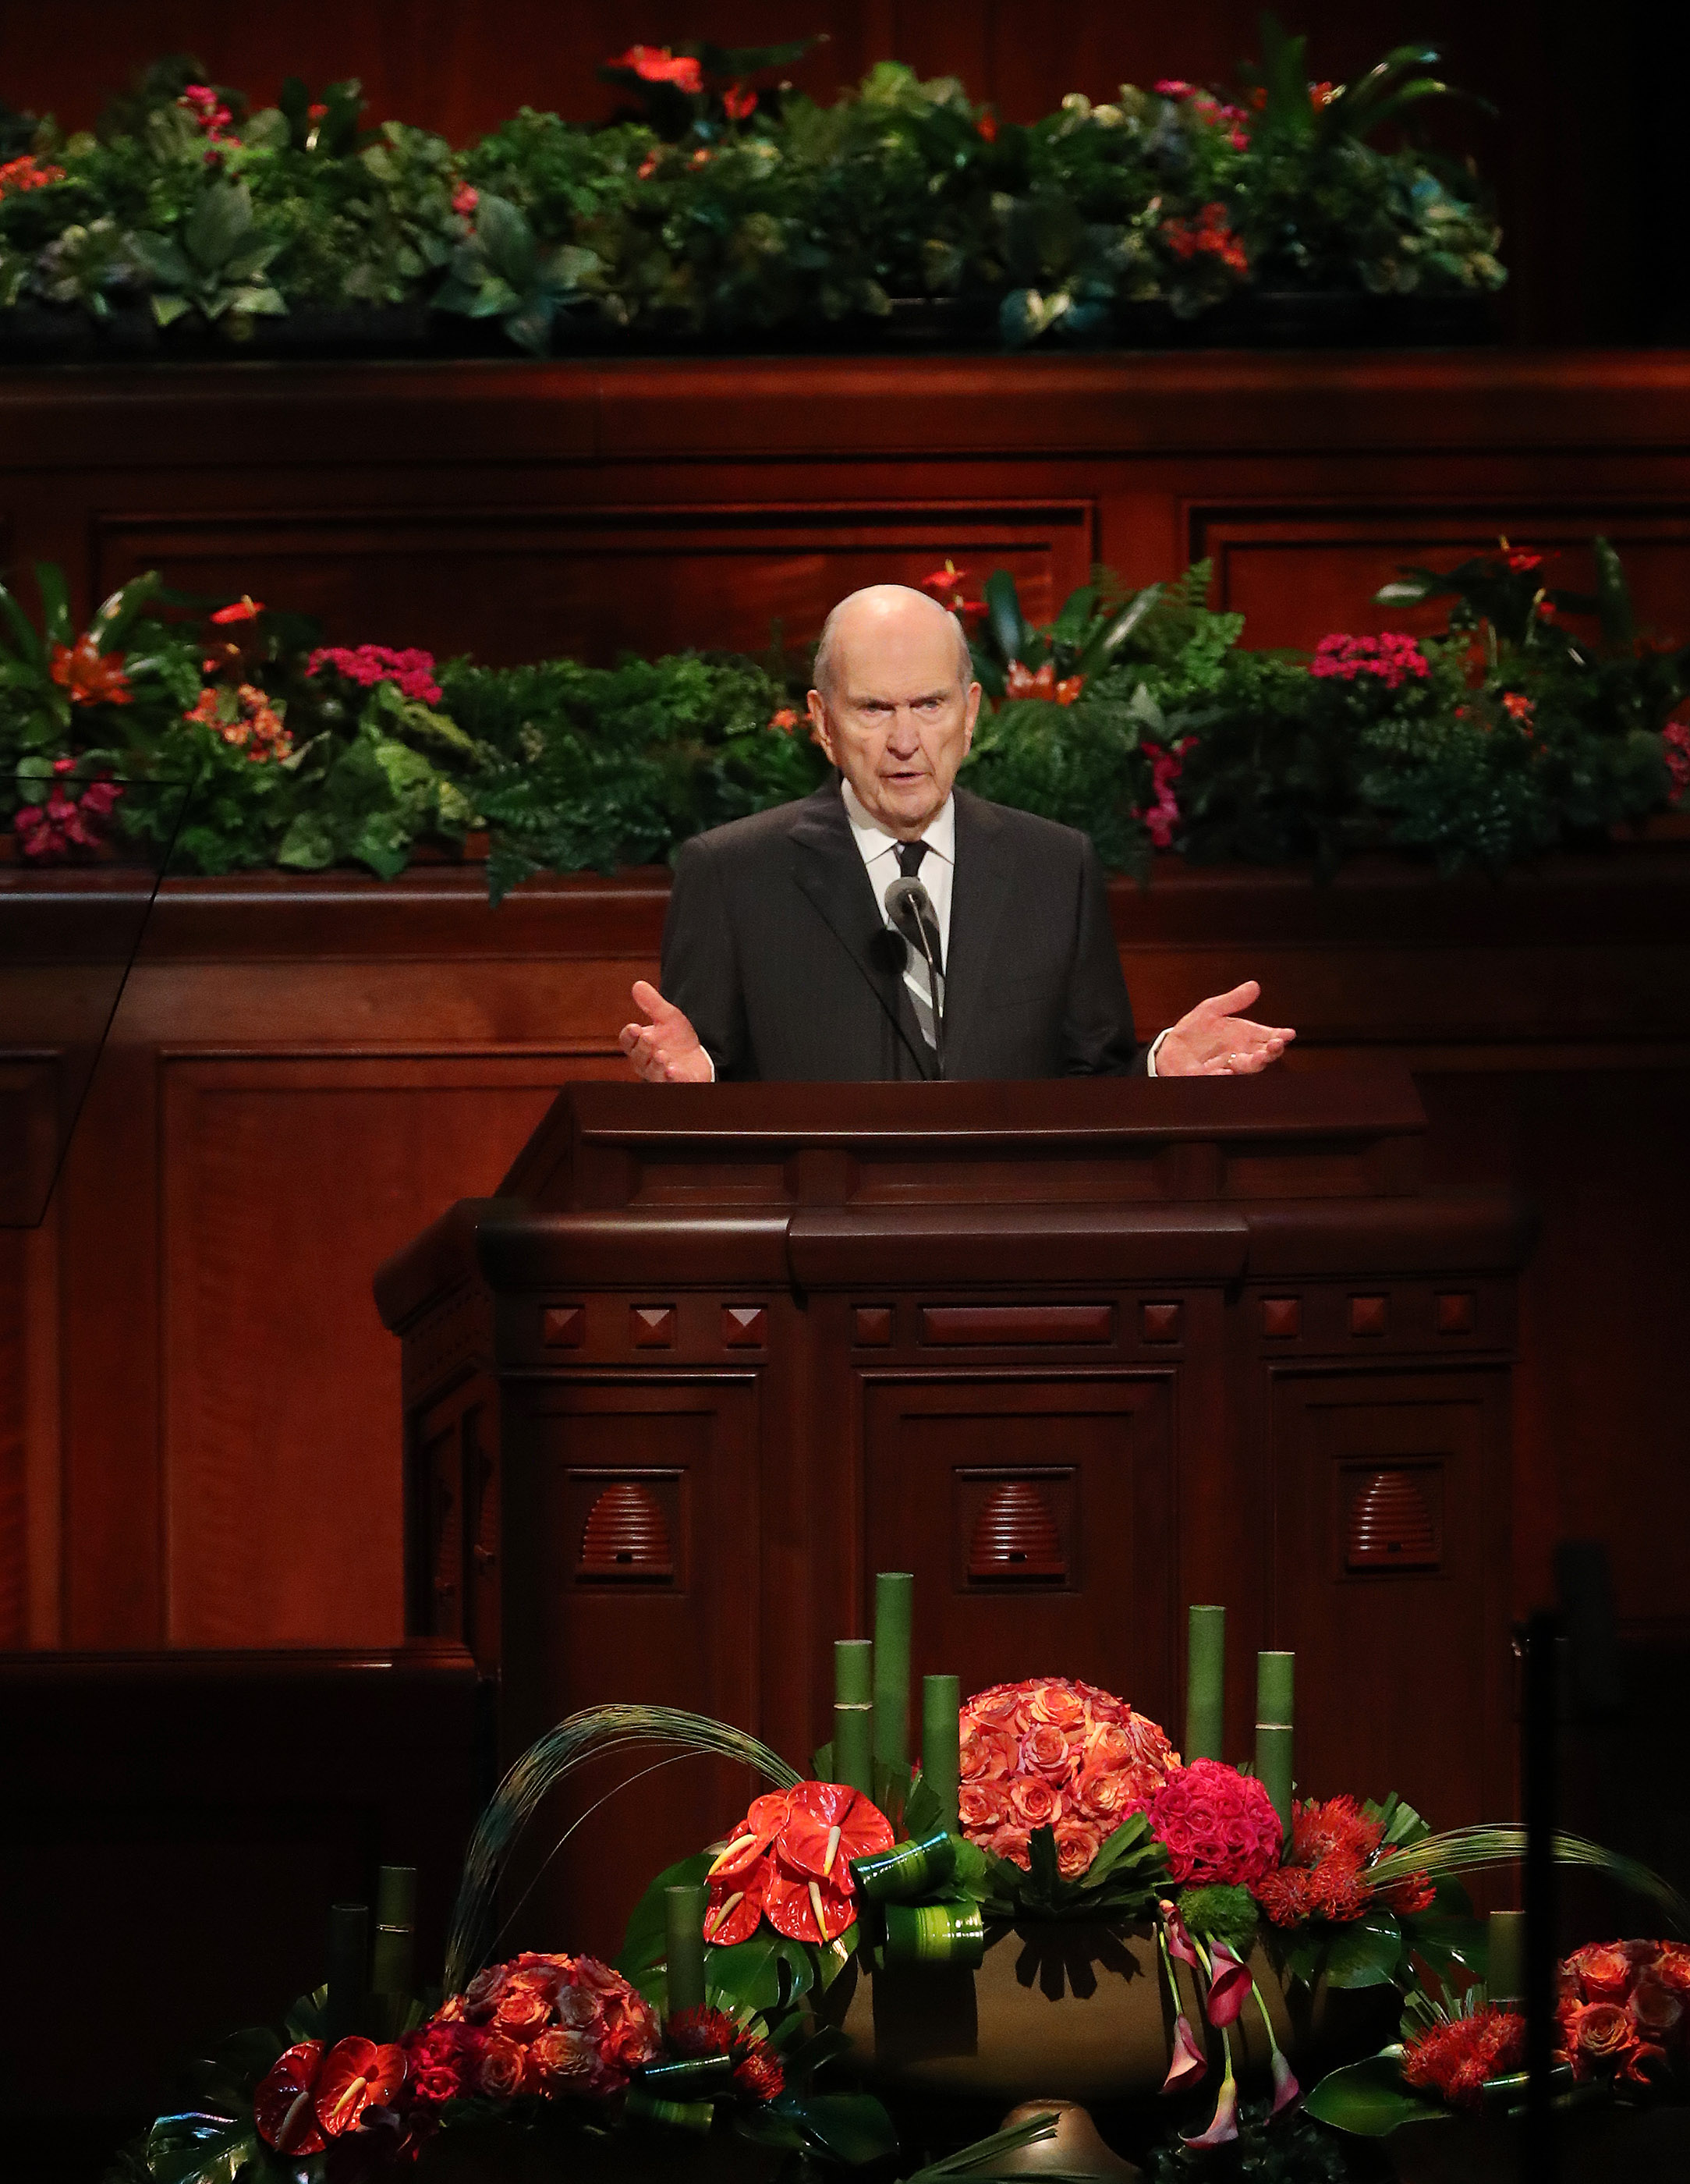 President Russell M. Nelson speaks about changes during the Saturday morning session of 188th Semiannual General Conference of The Church of Jesus Christ of Latter-day Saints in the Conference Salt Lake City on Saturday, Oct. 6, 2018.